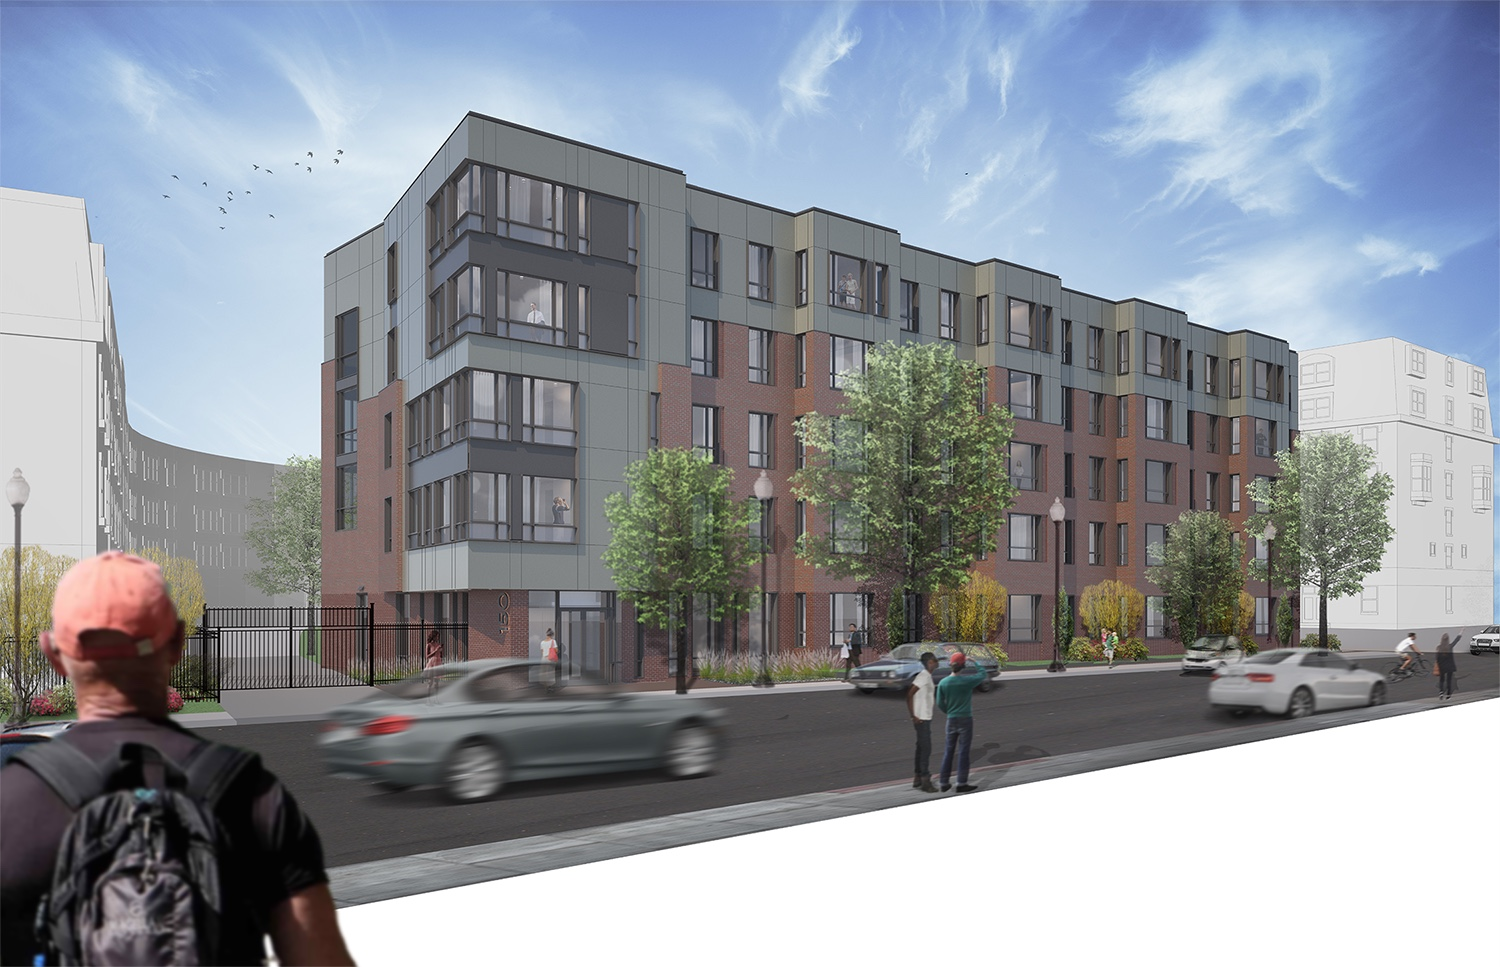 Douglass park expansion project south end roxbury housing residential hamilton company hacin associates rendering